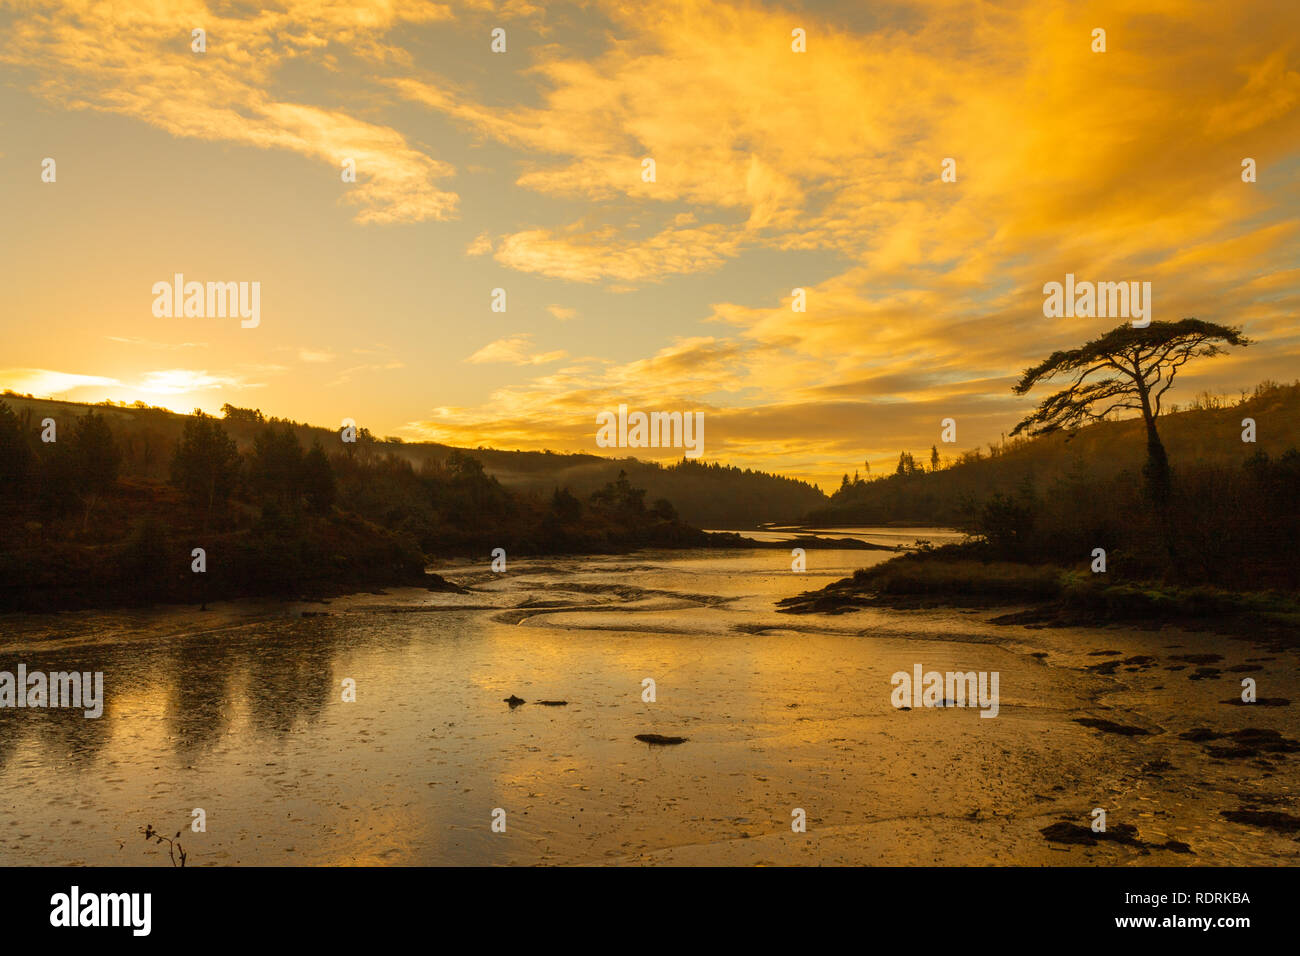 sunrise-or-dawn-over-castlehaven-harbour-west-cork-ireland-RDRKBA.jpg